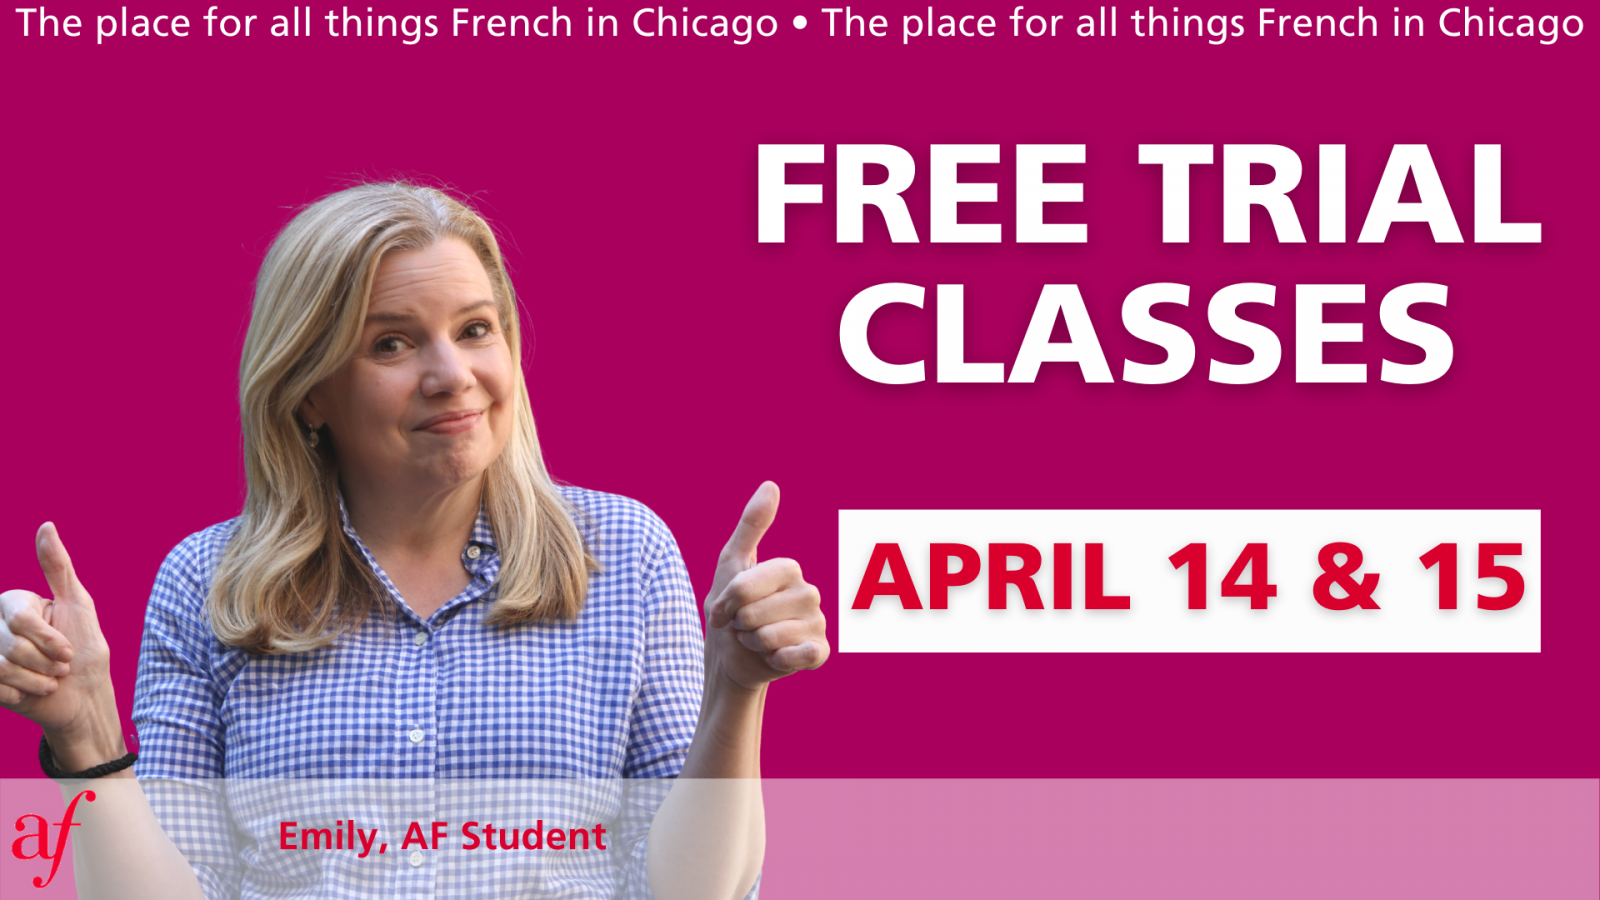 Free Trial Classes - Spring 2021